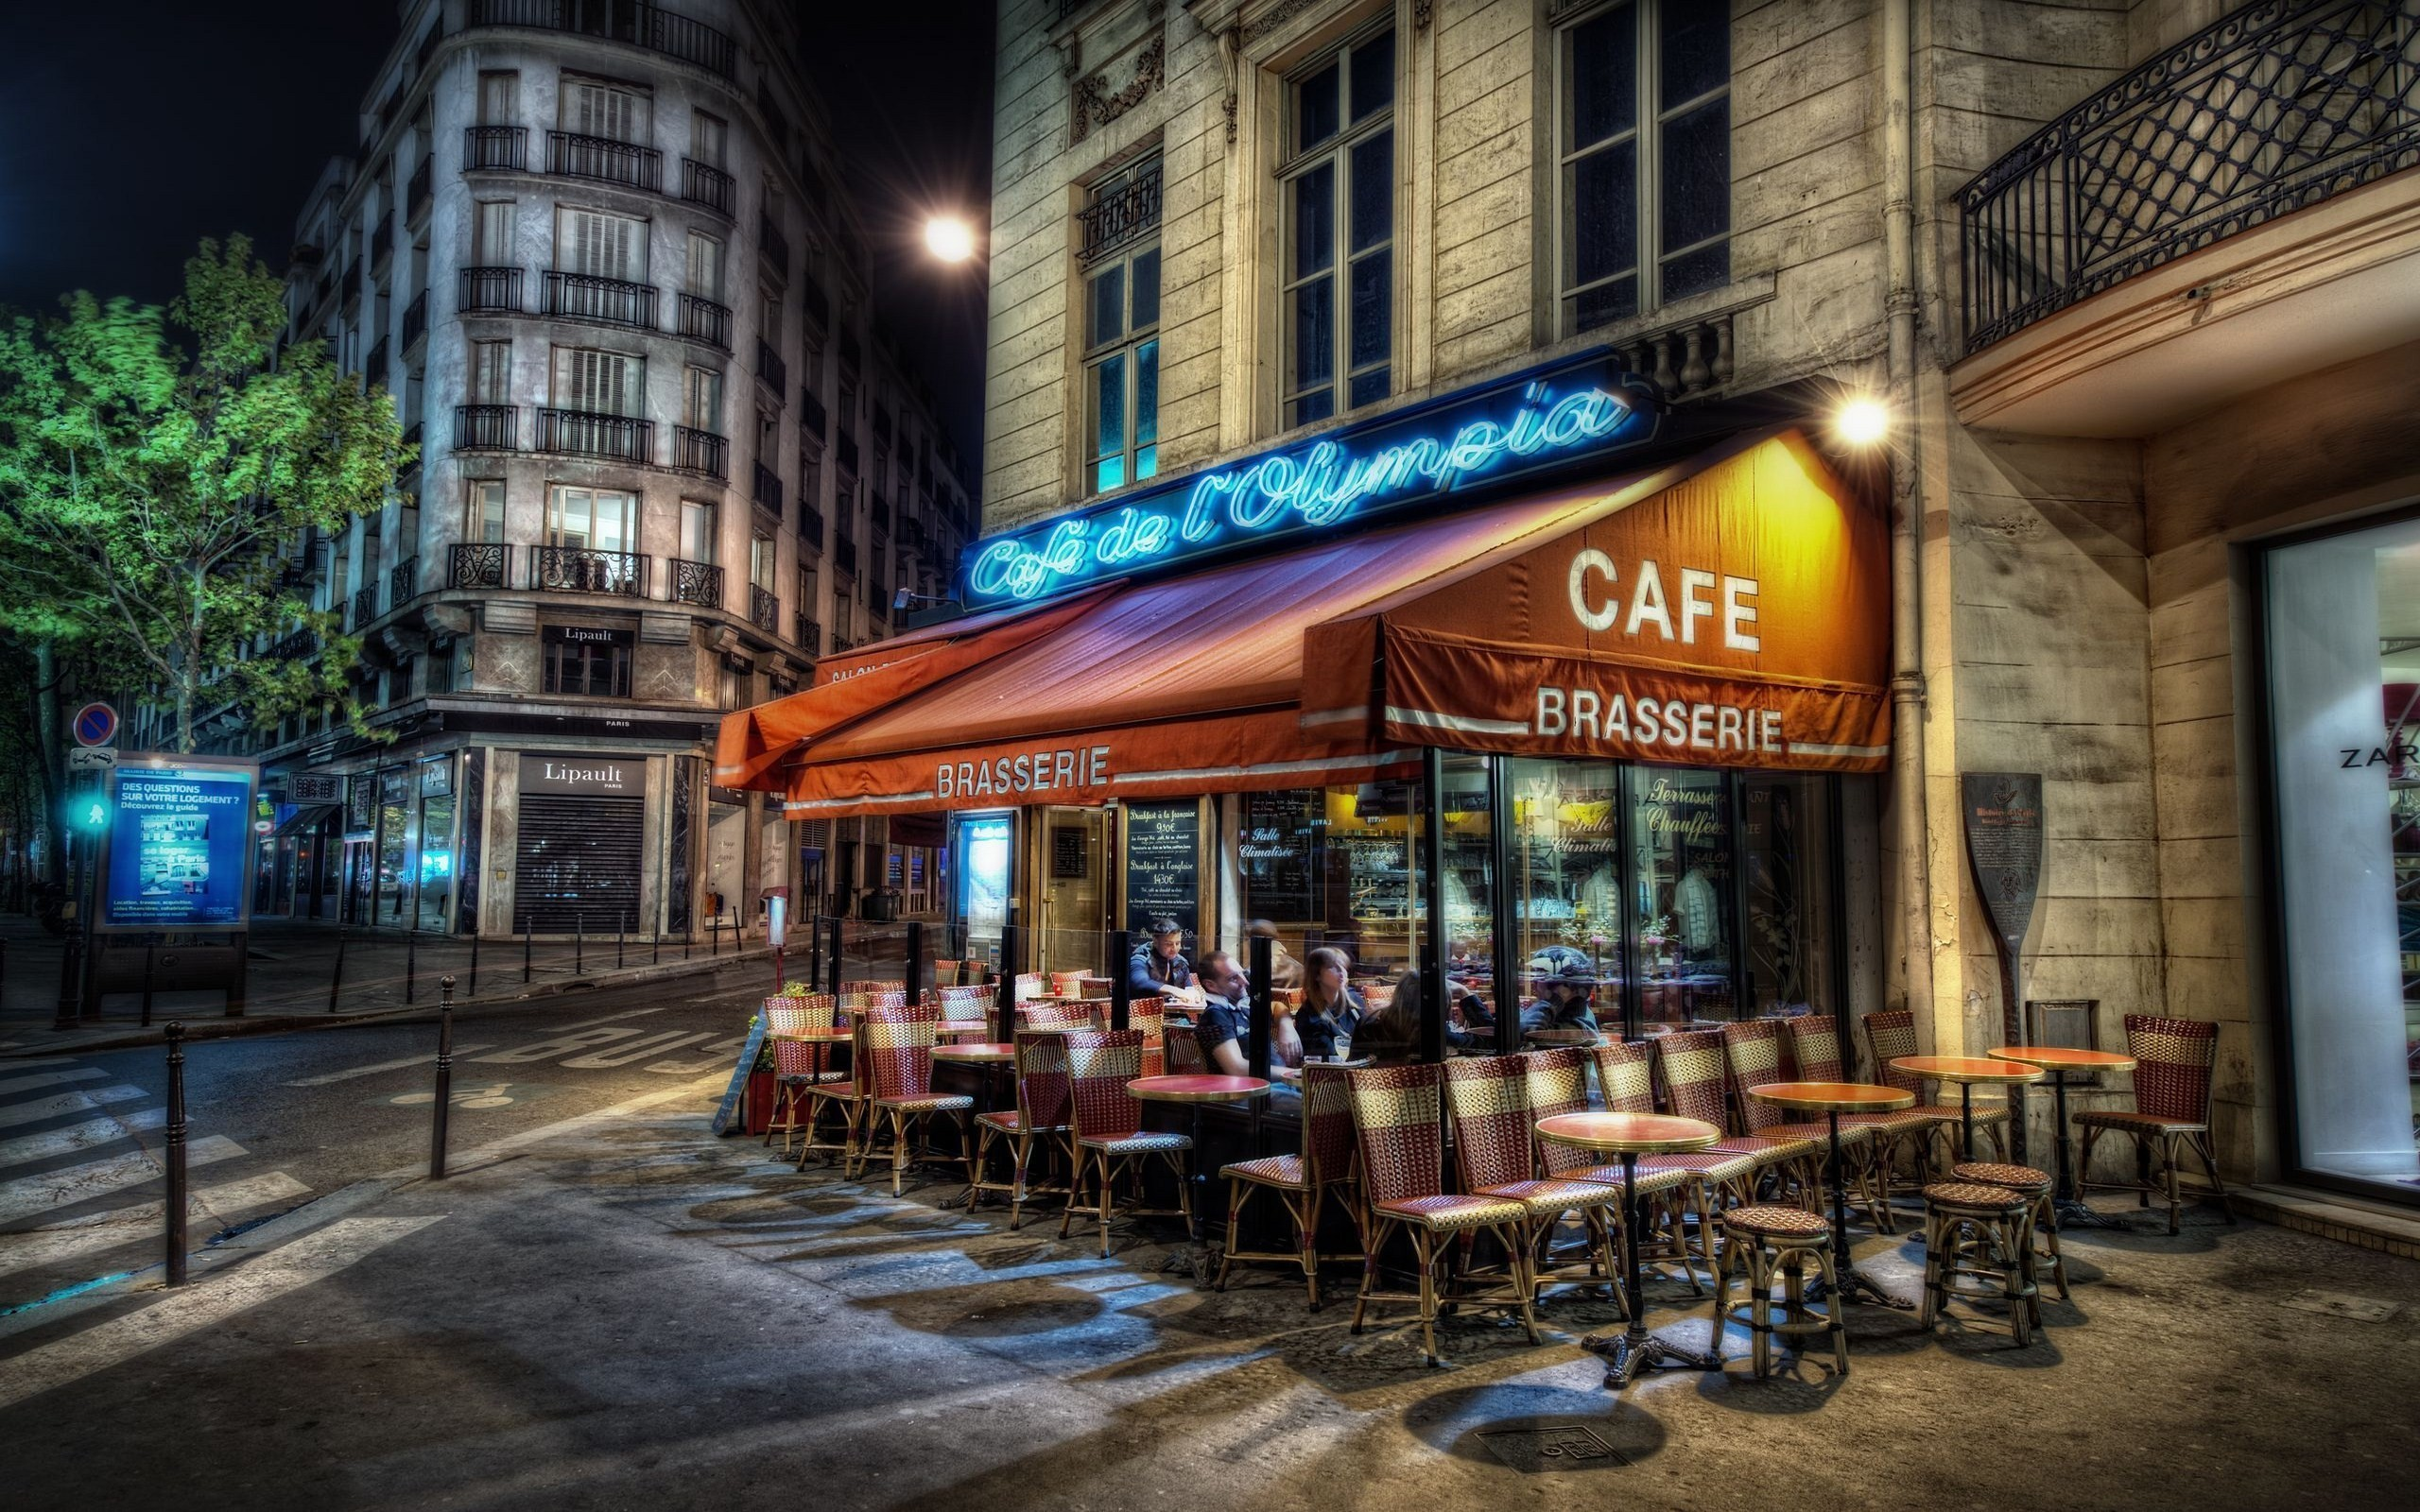 Neon Cafe You are viewing a Scenic Wallpaper